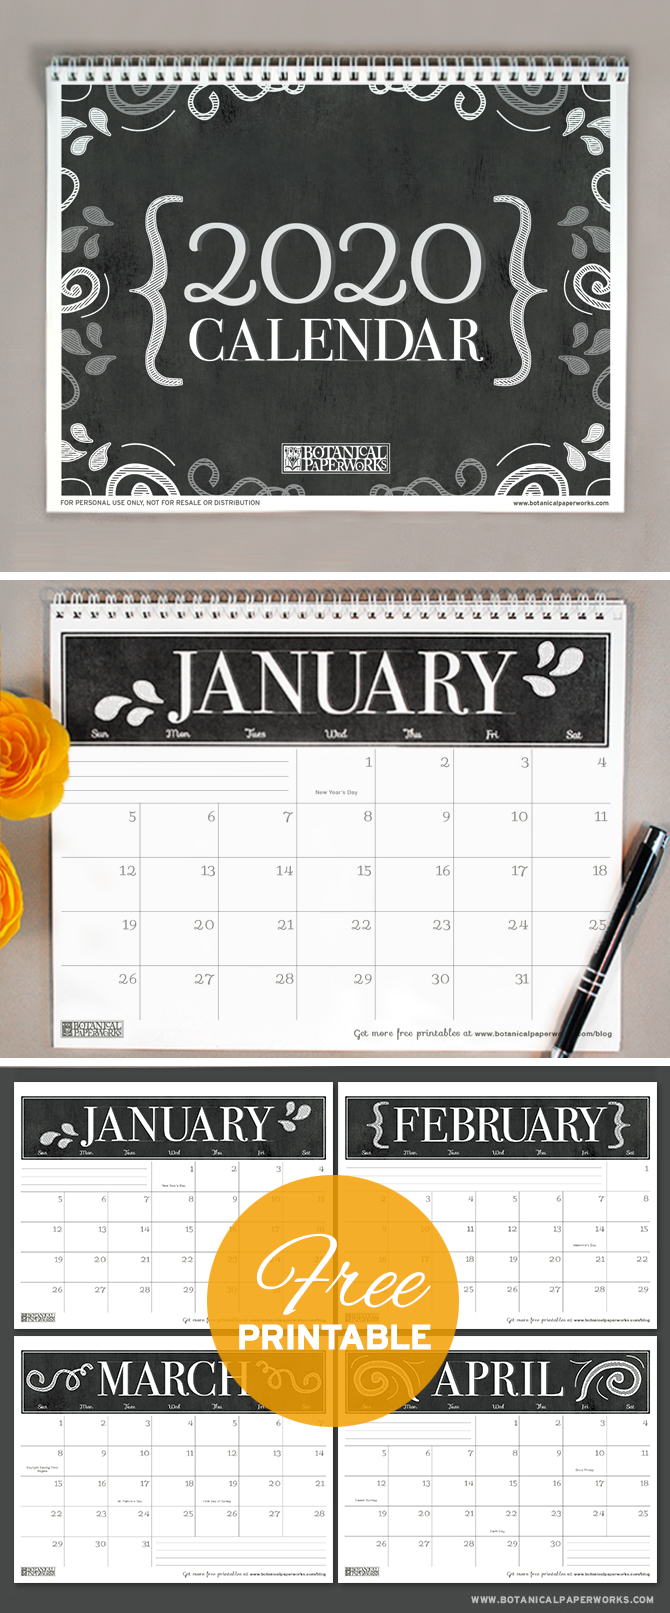 With a sophisticated black and white chalkboard design, this 2020 free printable calendar is perfect for home or office use. See more designs and download your favorite 2019 calendar on our blog!